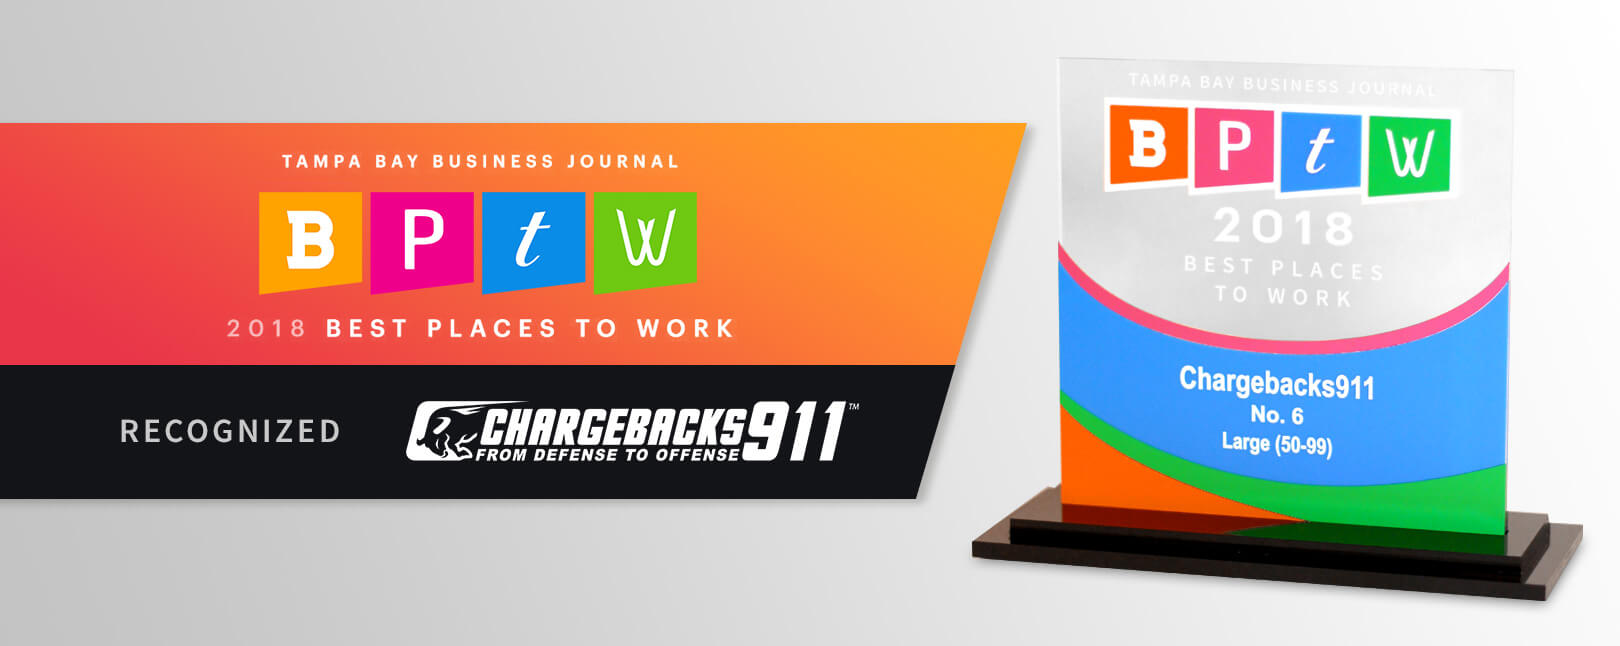 Chargebacks911 - Best Place to Work